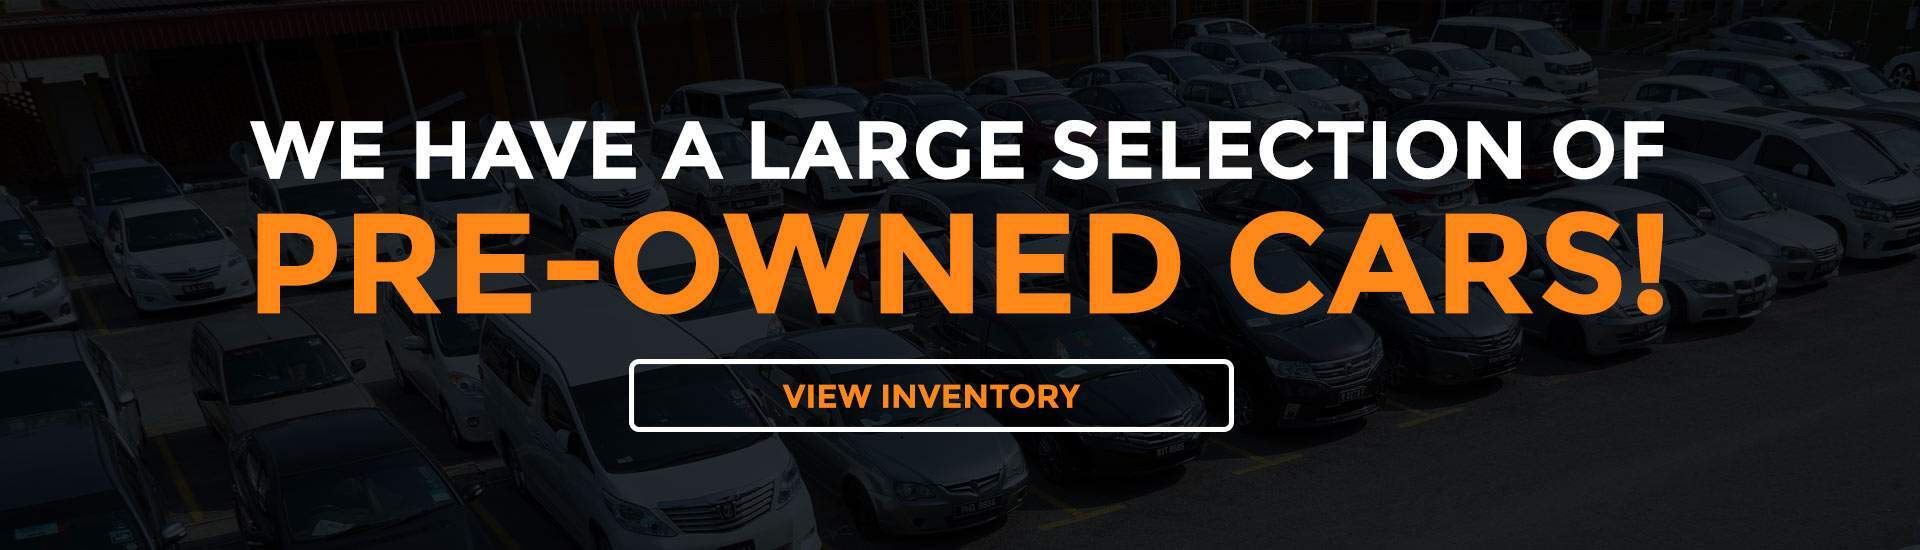 Pre-Owned Cars!